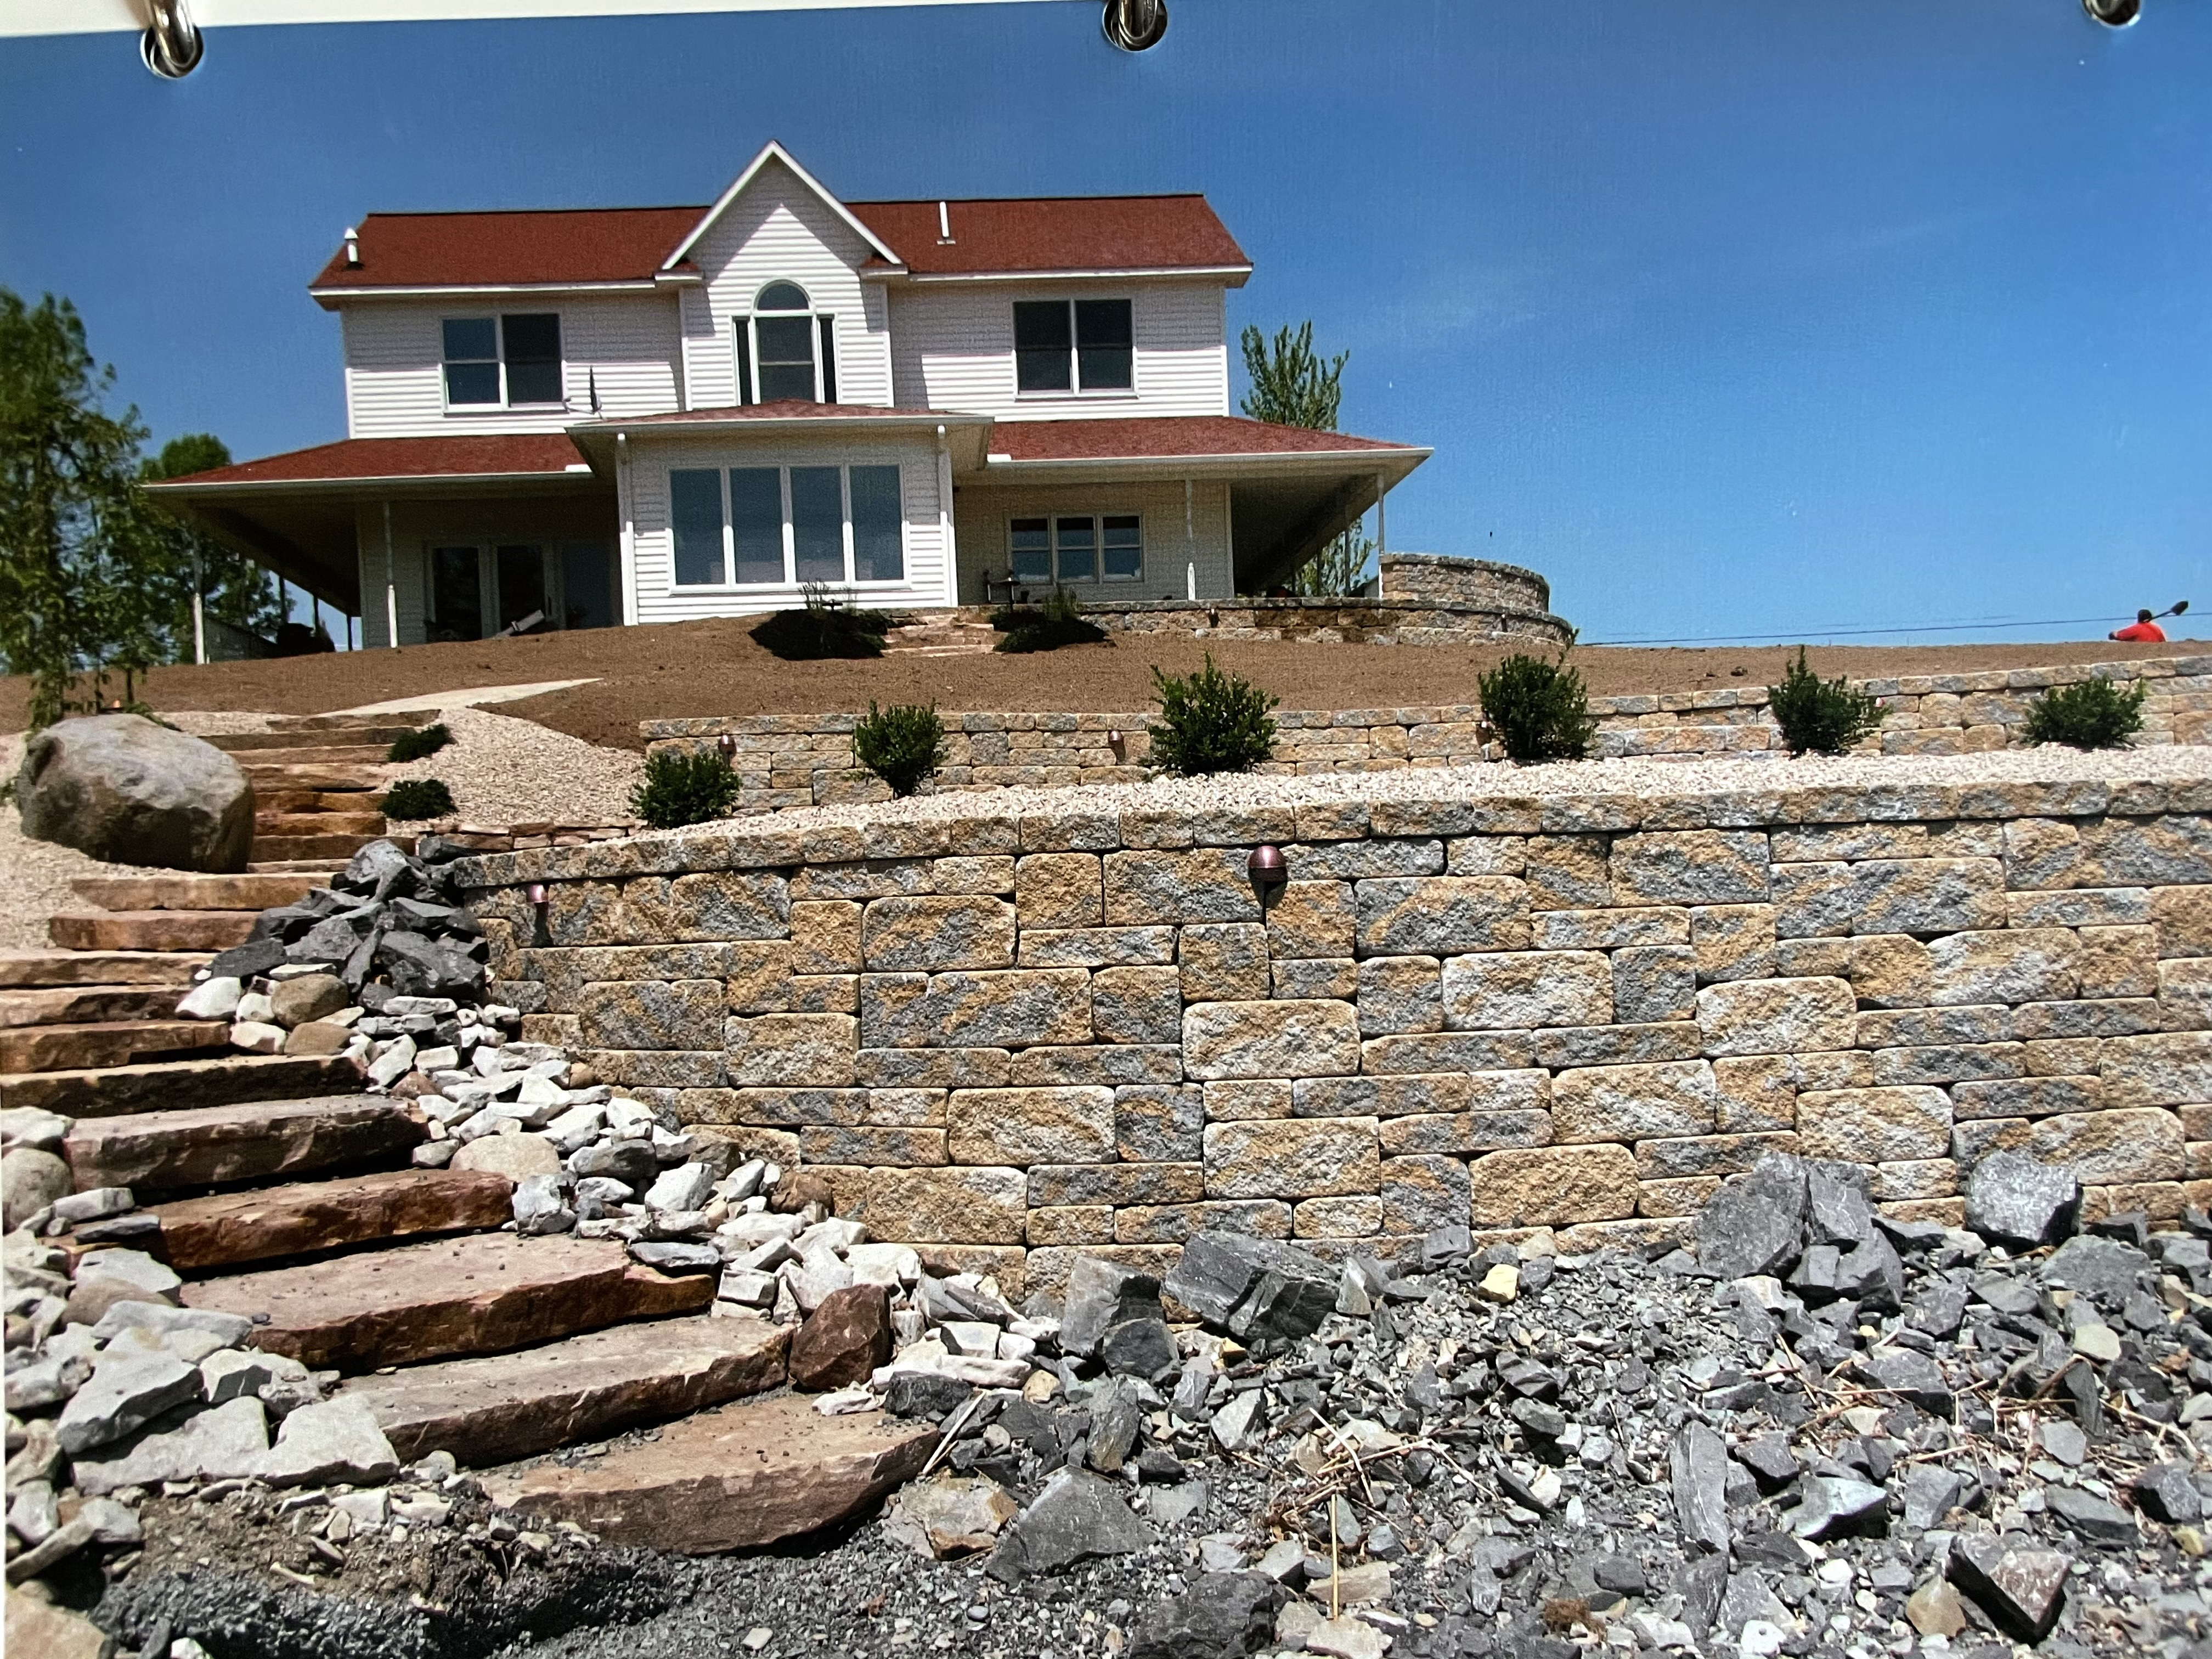 Terraced Retaining Walls with Sandstone Stairs